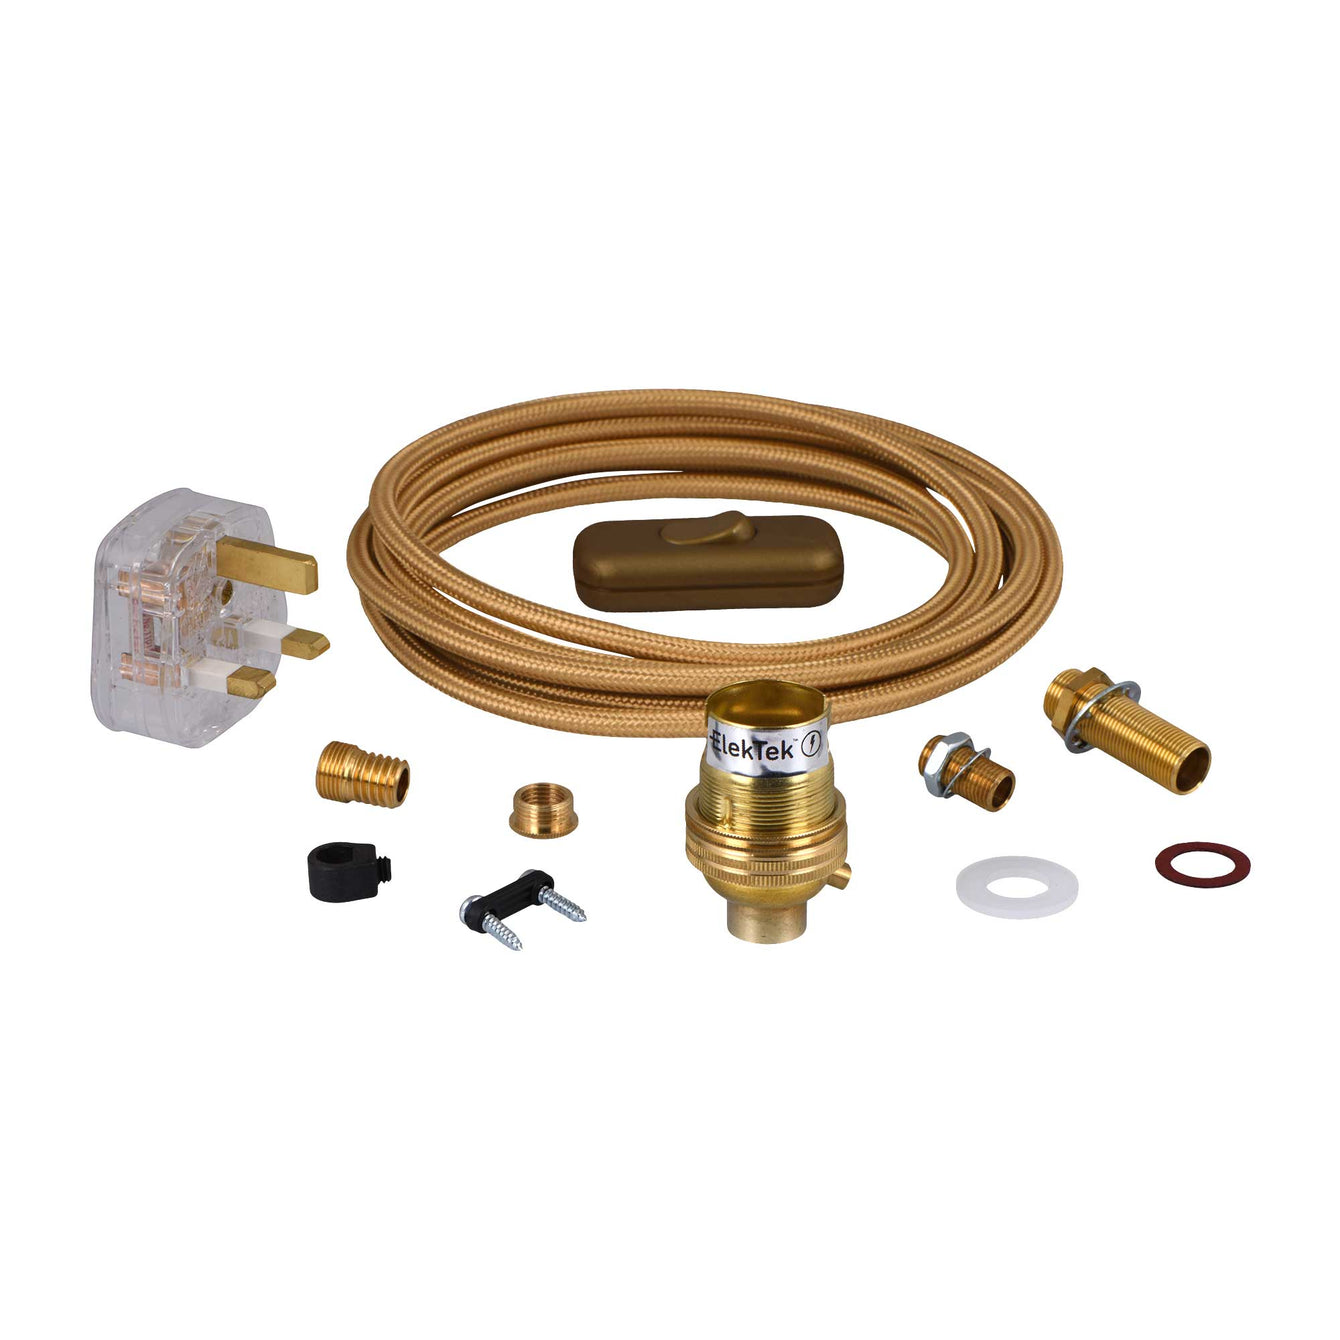 ElekTek Premium Lamp Kit Brass Unswitched B22 Lamp Holder with Gold Flex and 3A UK Plug - Buy It Better Round